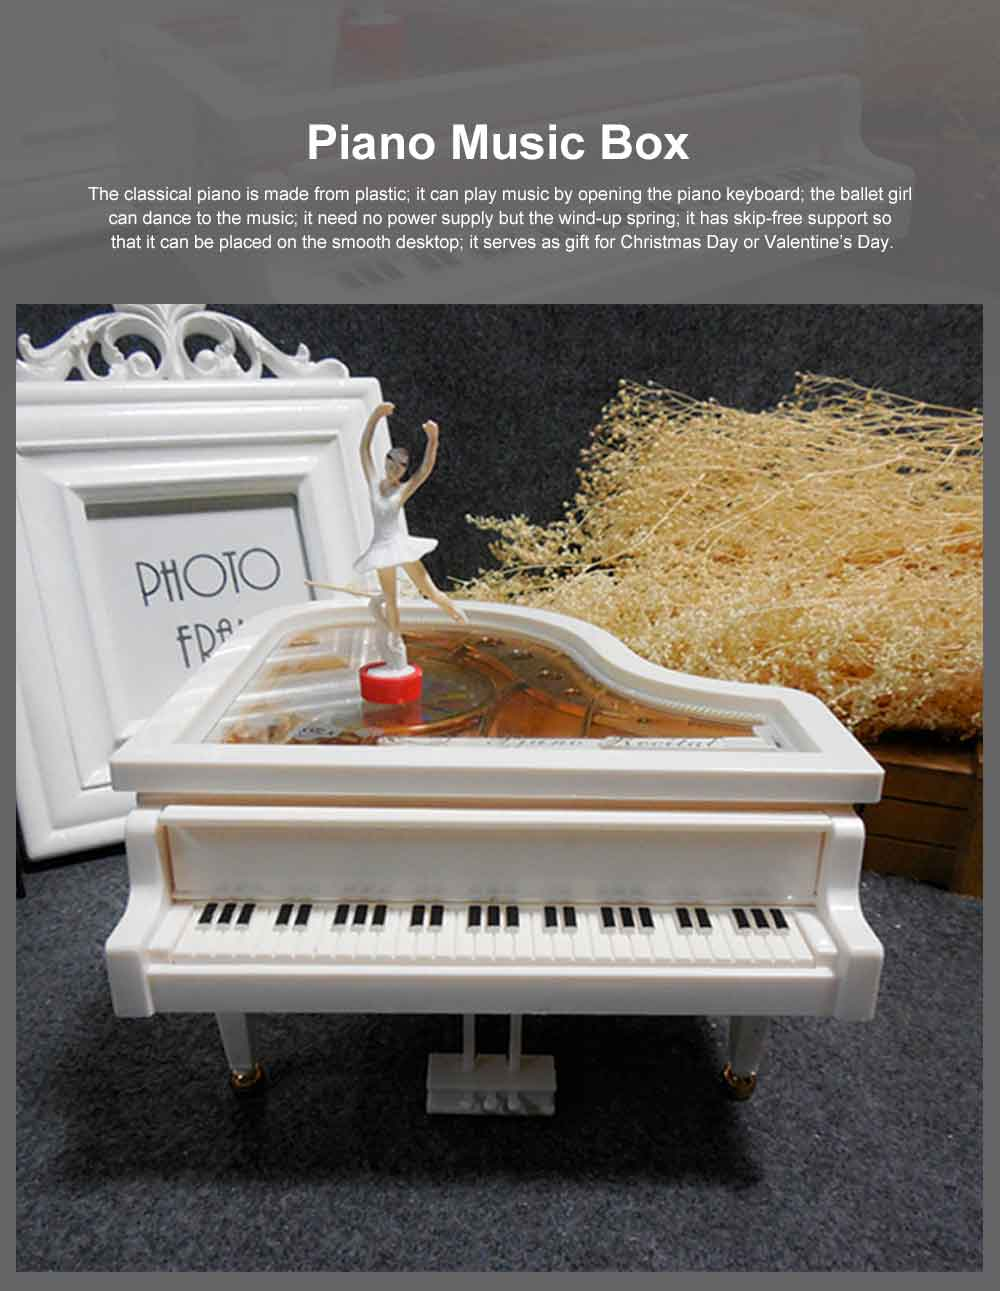 Creative Ballet Rotating Piano Music Box Christmas Gift or Valentine's Day Presemt Piano with Dancing Ballet Girl 0